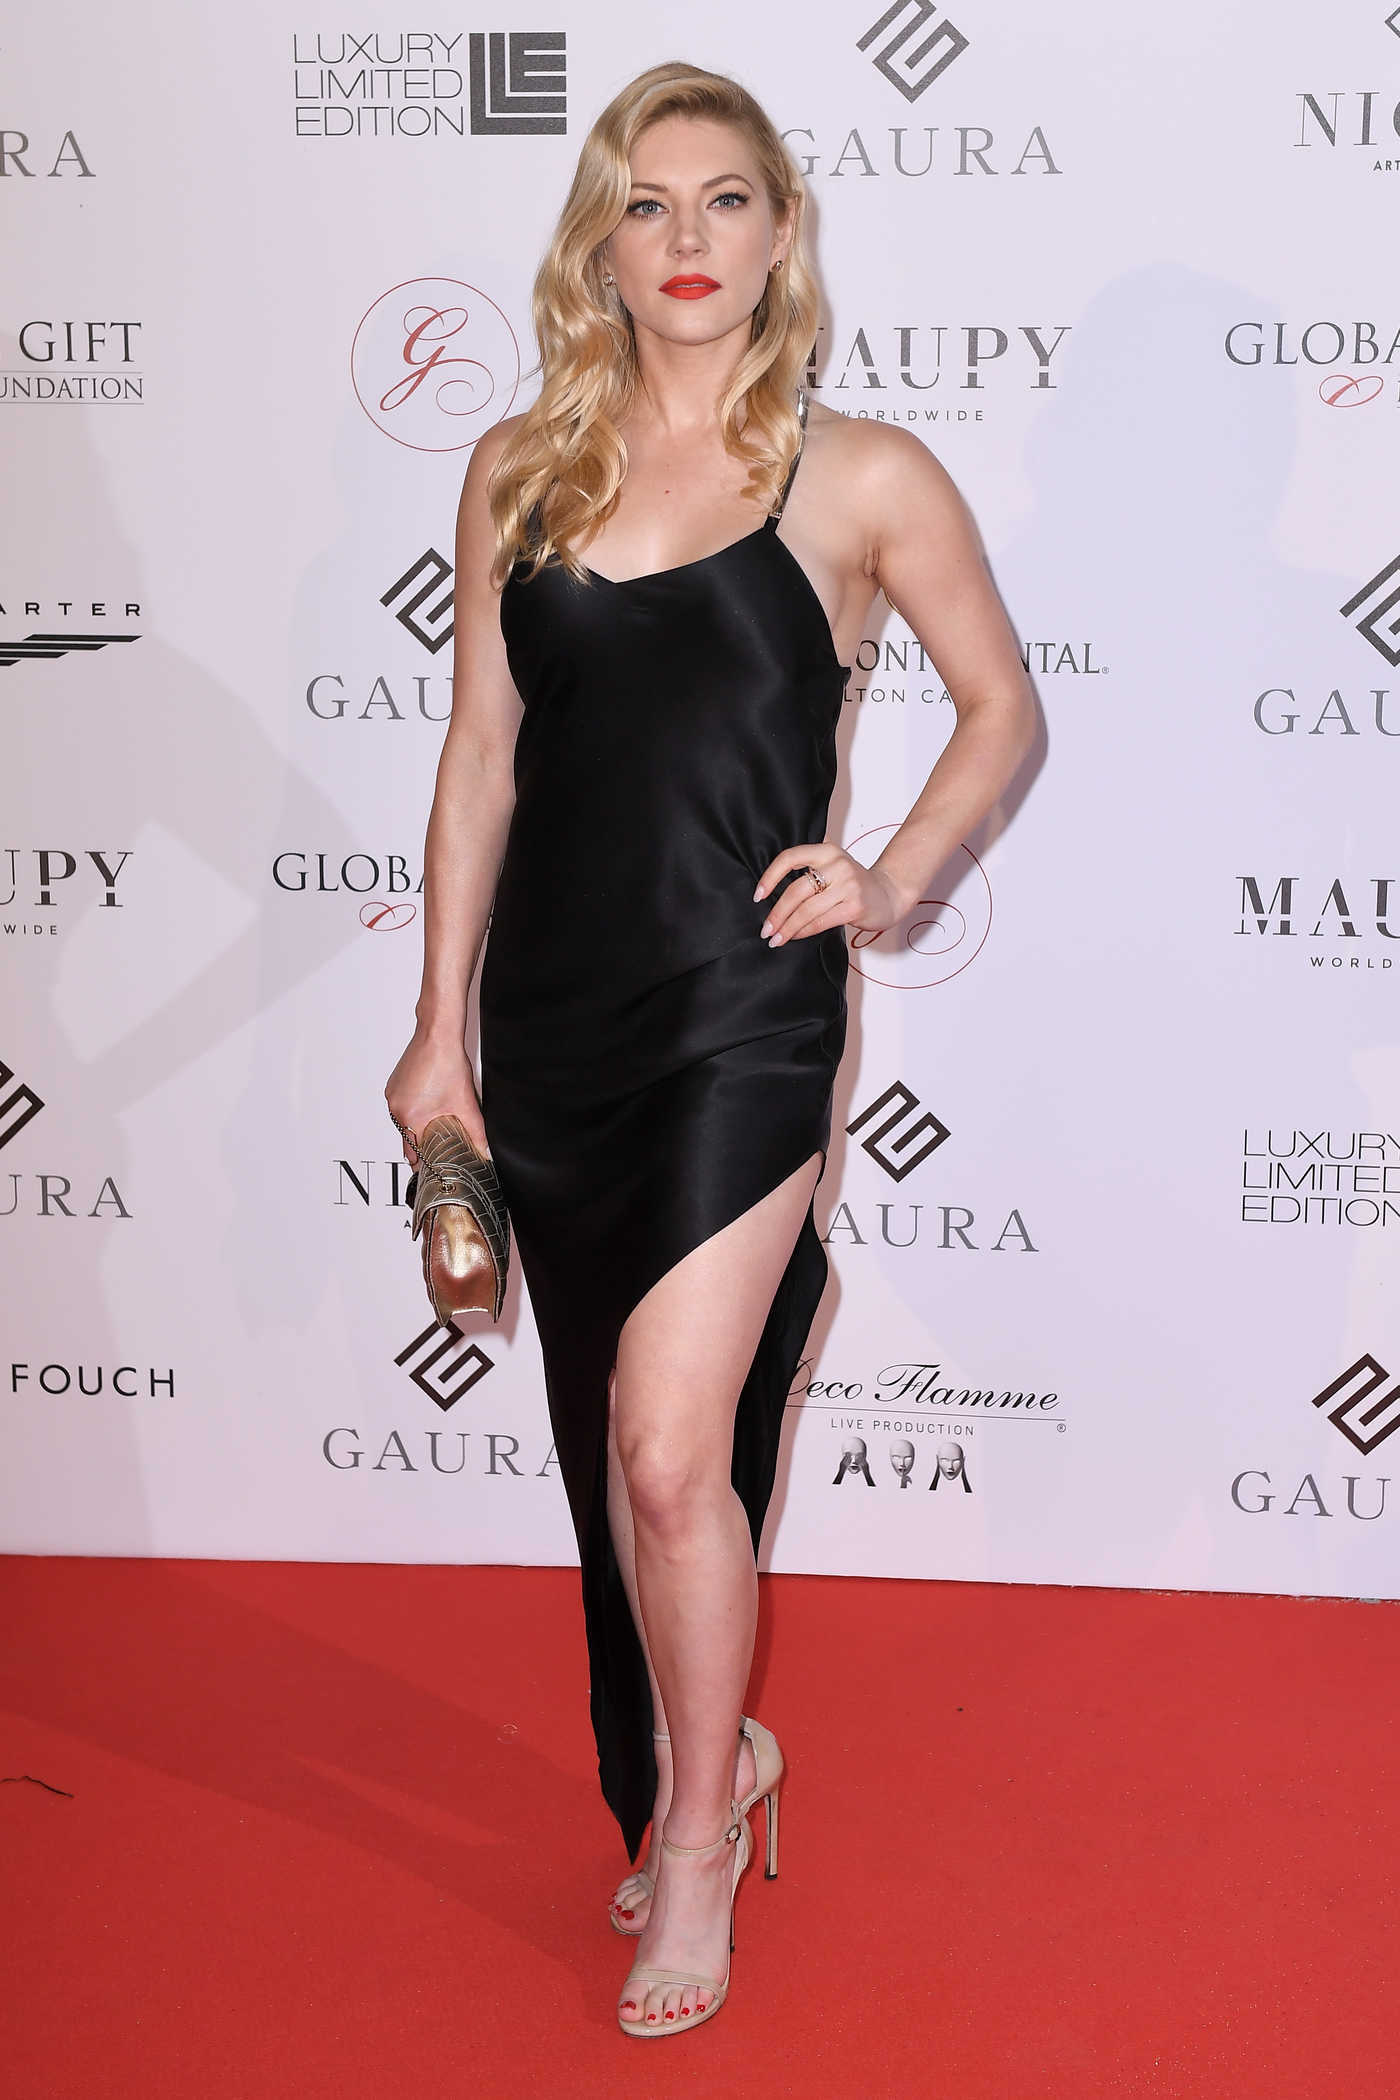 Katheryn Winnick at the Global Gift Initiative During the 71st Cannes Film Festival in Cannes 05/10/2018